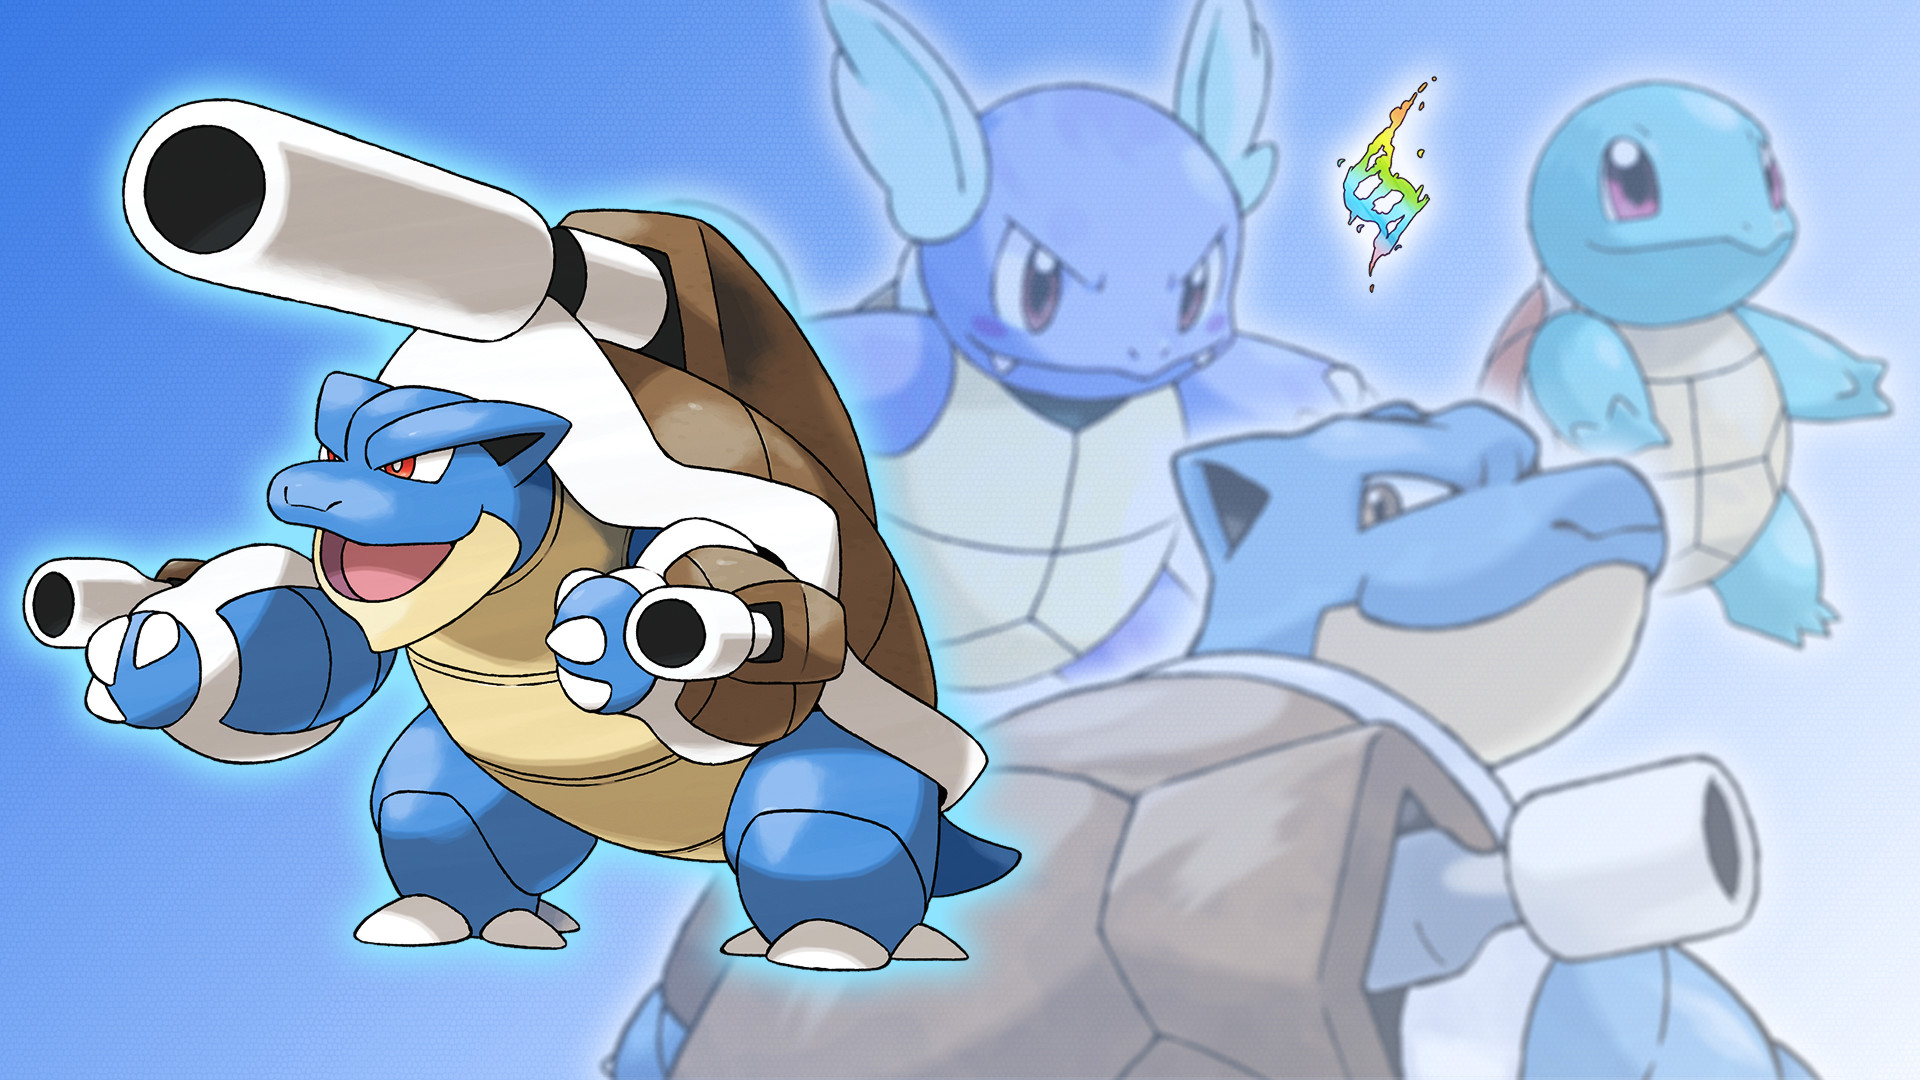 Res: 1920x1080, Pokemon Squirtle 1920 Amp 2151080 Wallpaper